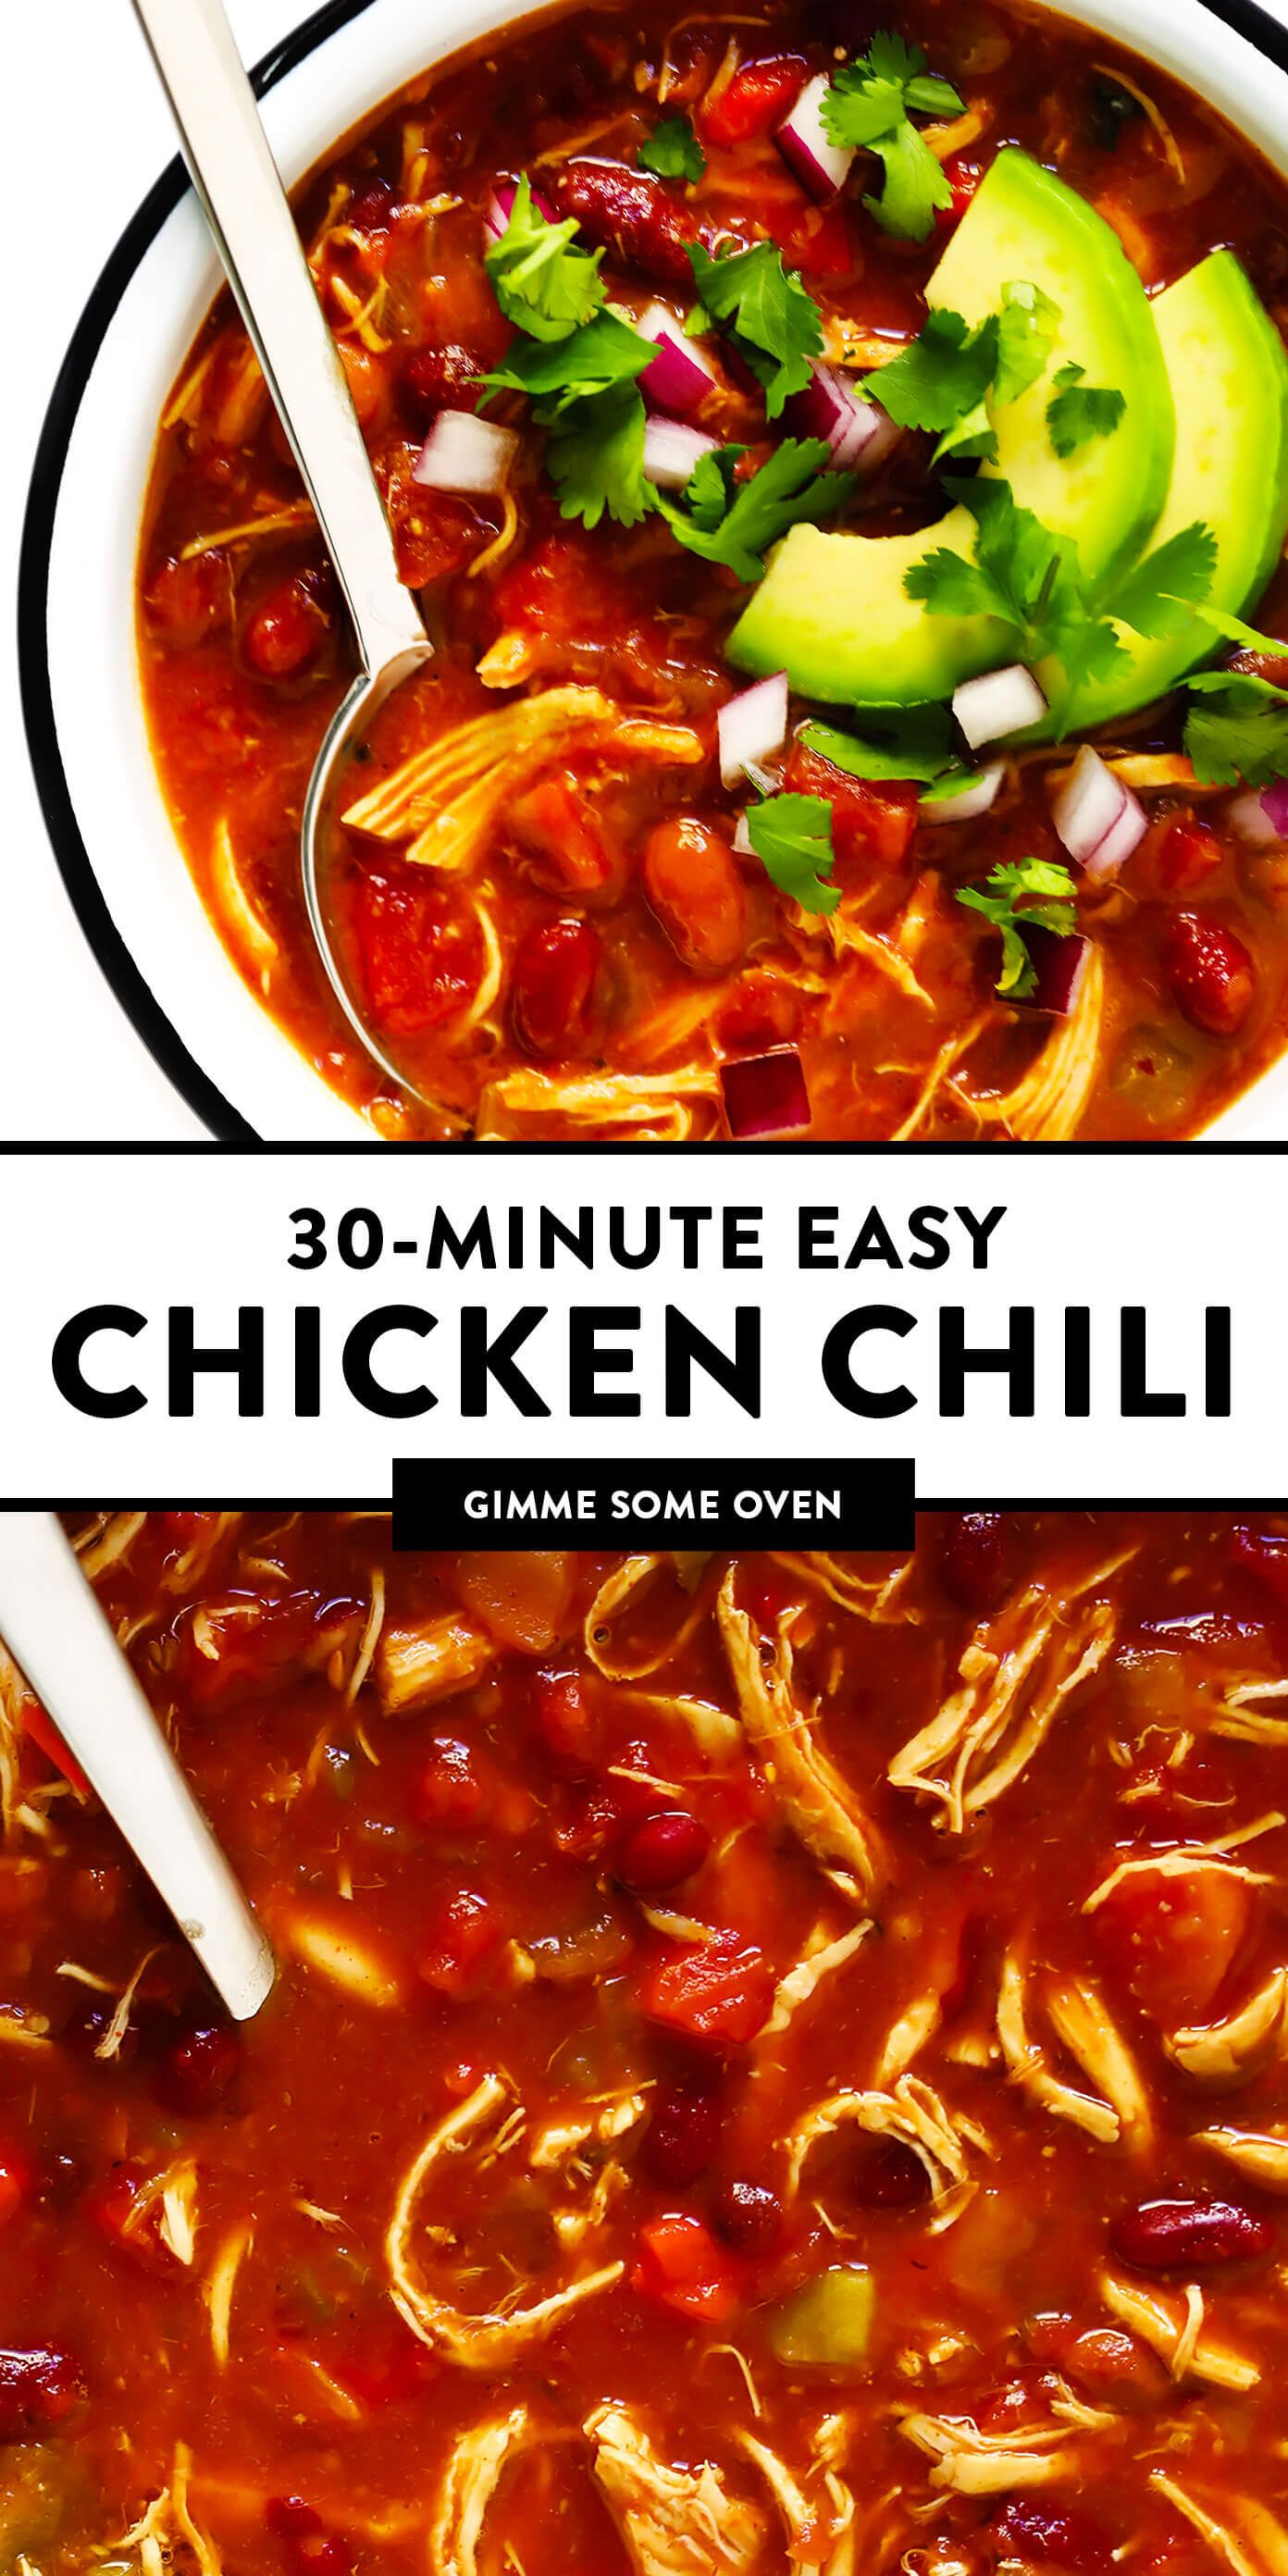 Easy Chicken Chili Gimme Some Oven Recipe Easy Chicken Chili Red Chicken Chili Recipe Chili Recipes